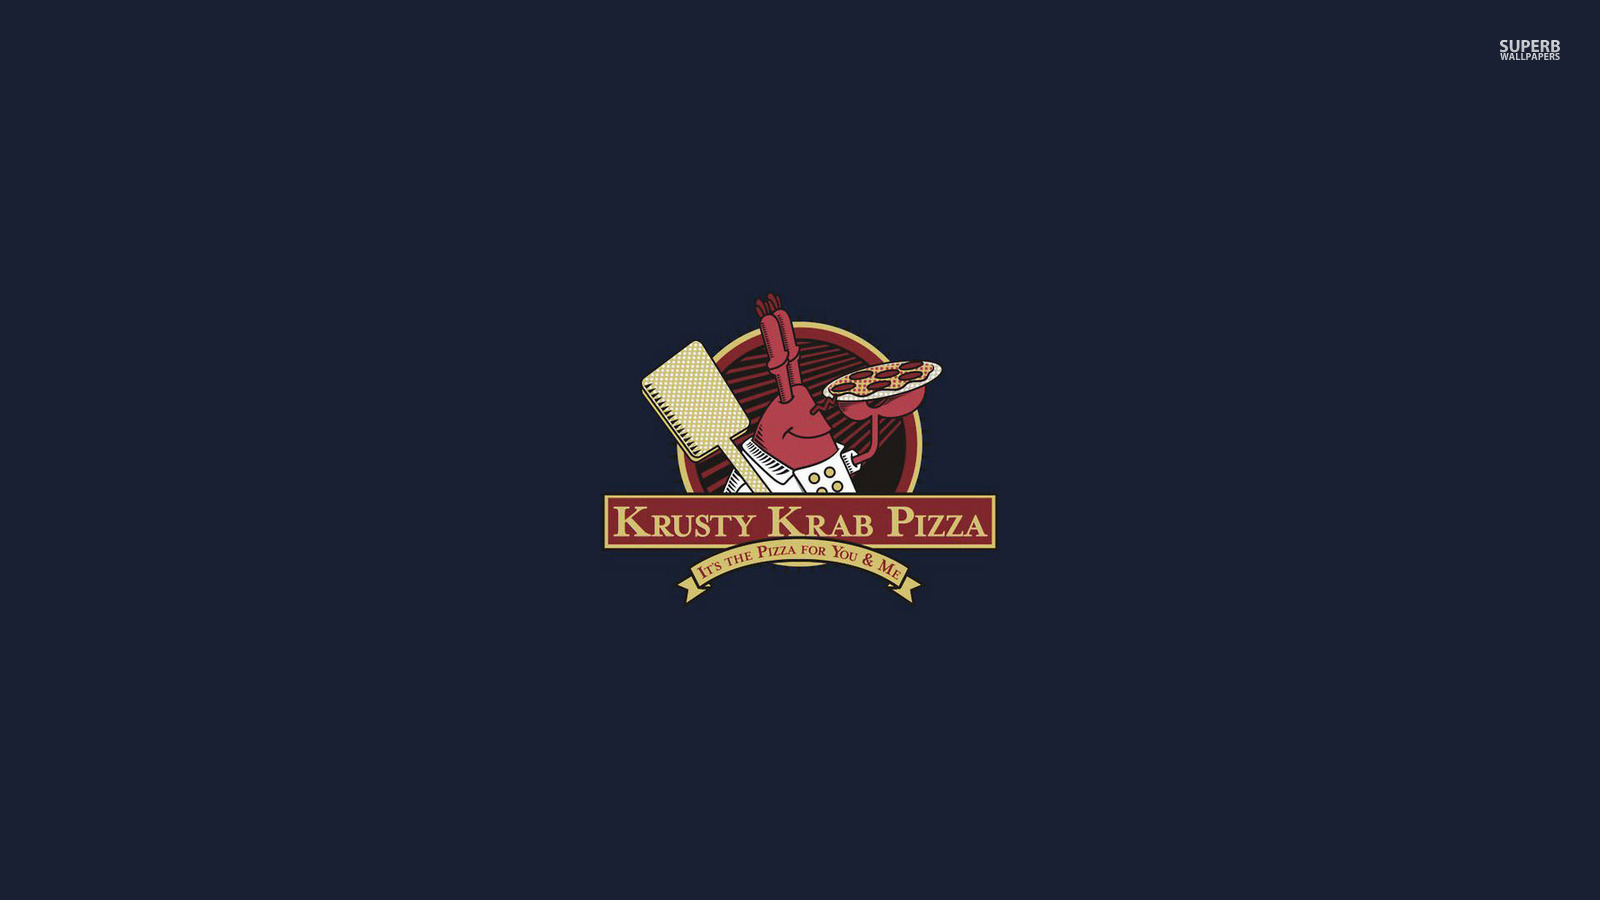 Krusty Krab Pizzy